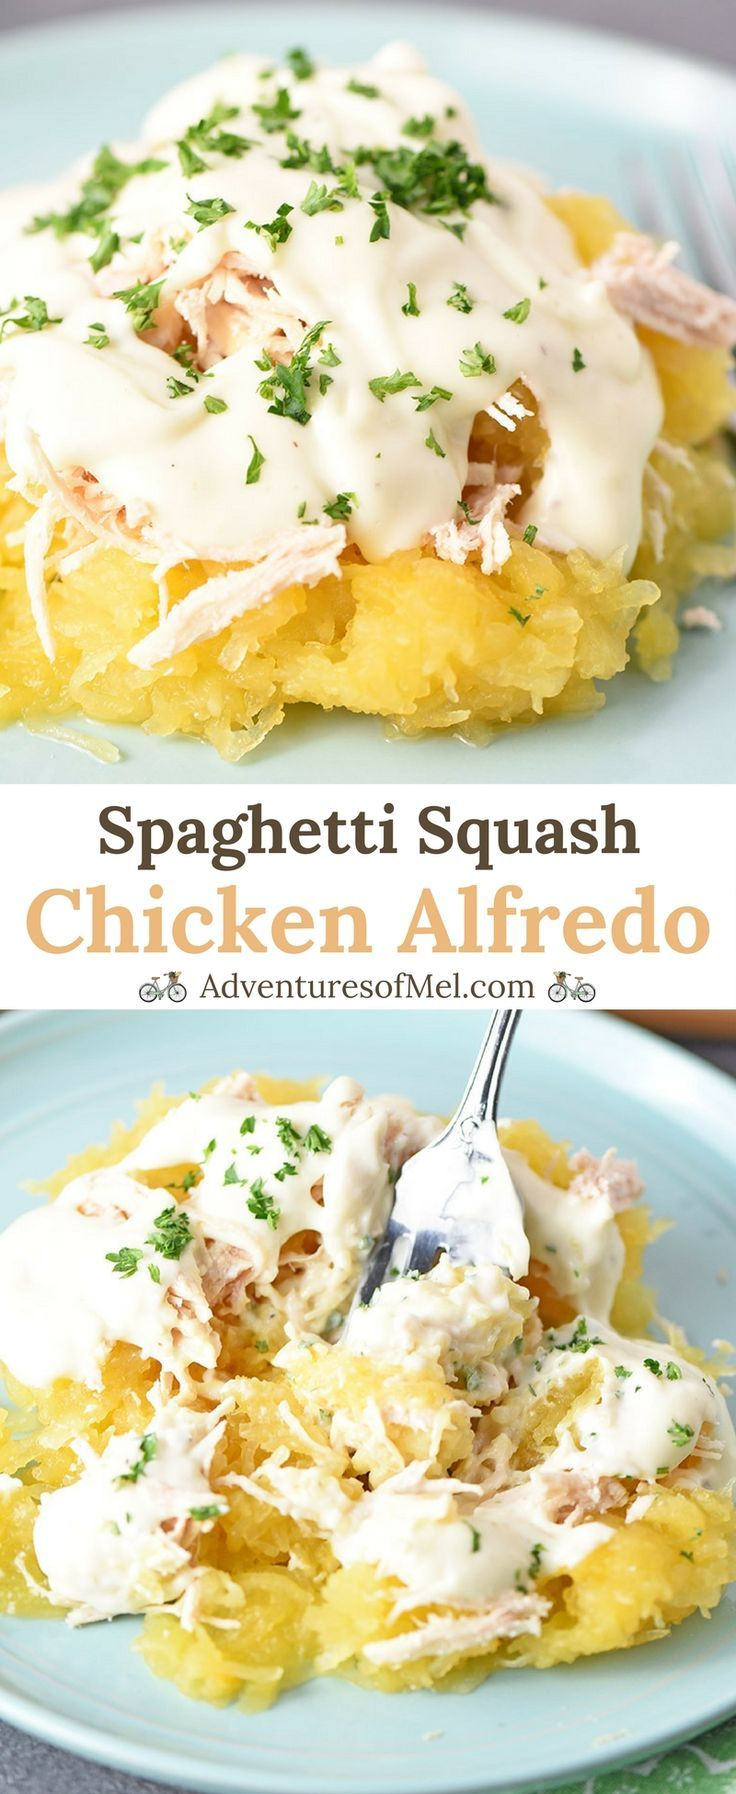 Spaghetti Squash Chicken Alfredo, made with shredded chicken and an easy homemade alfredo sauce, is a healthy recipe for dinner. So creamy and delicious! #chickenalfredo #chicken #spaghettisquash #dinner #dinnerrecipes #pasta #alfredo #chickenrecipes